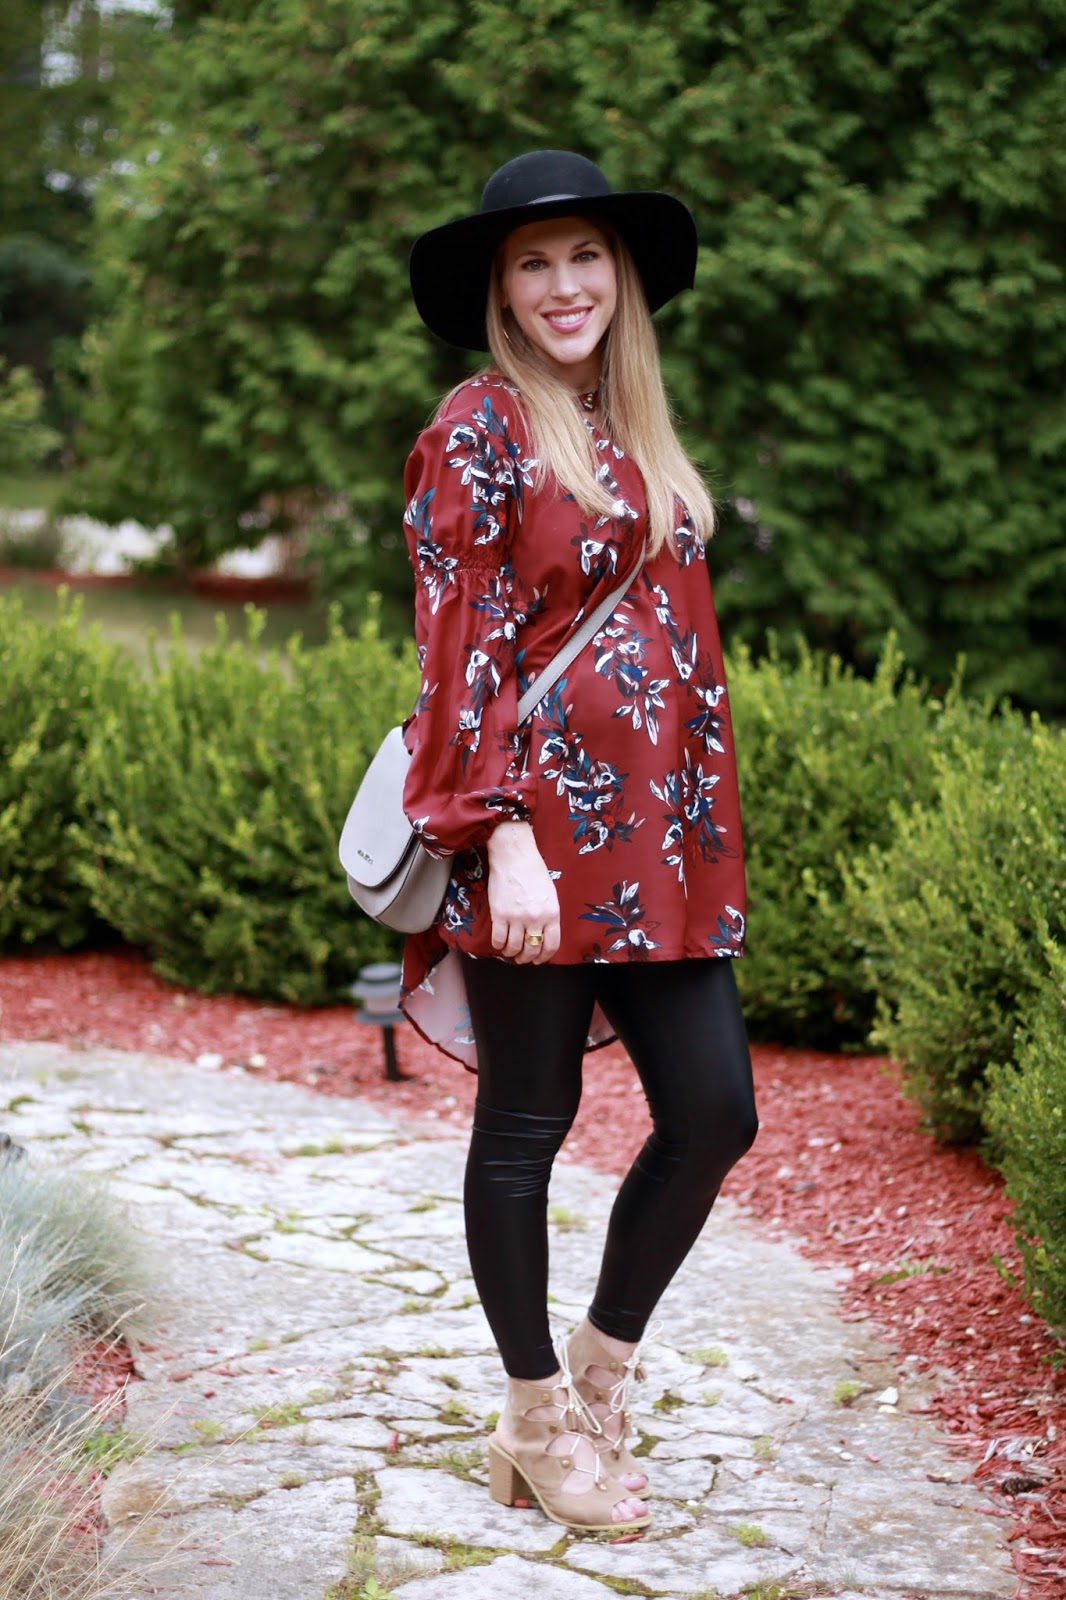 SheIn burgundy floral tunic, leather leggings, black floppy hat, taupe lace up sandals, fall maternity outfit